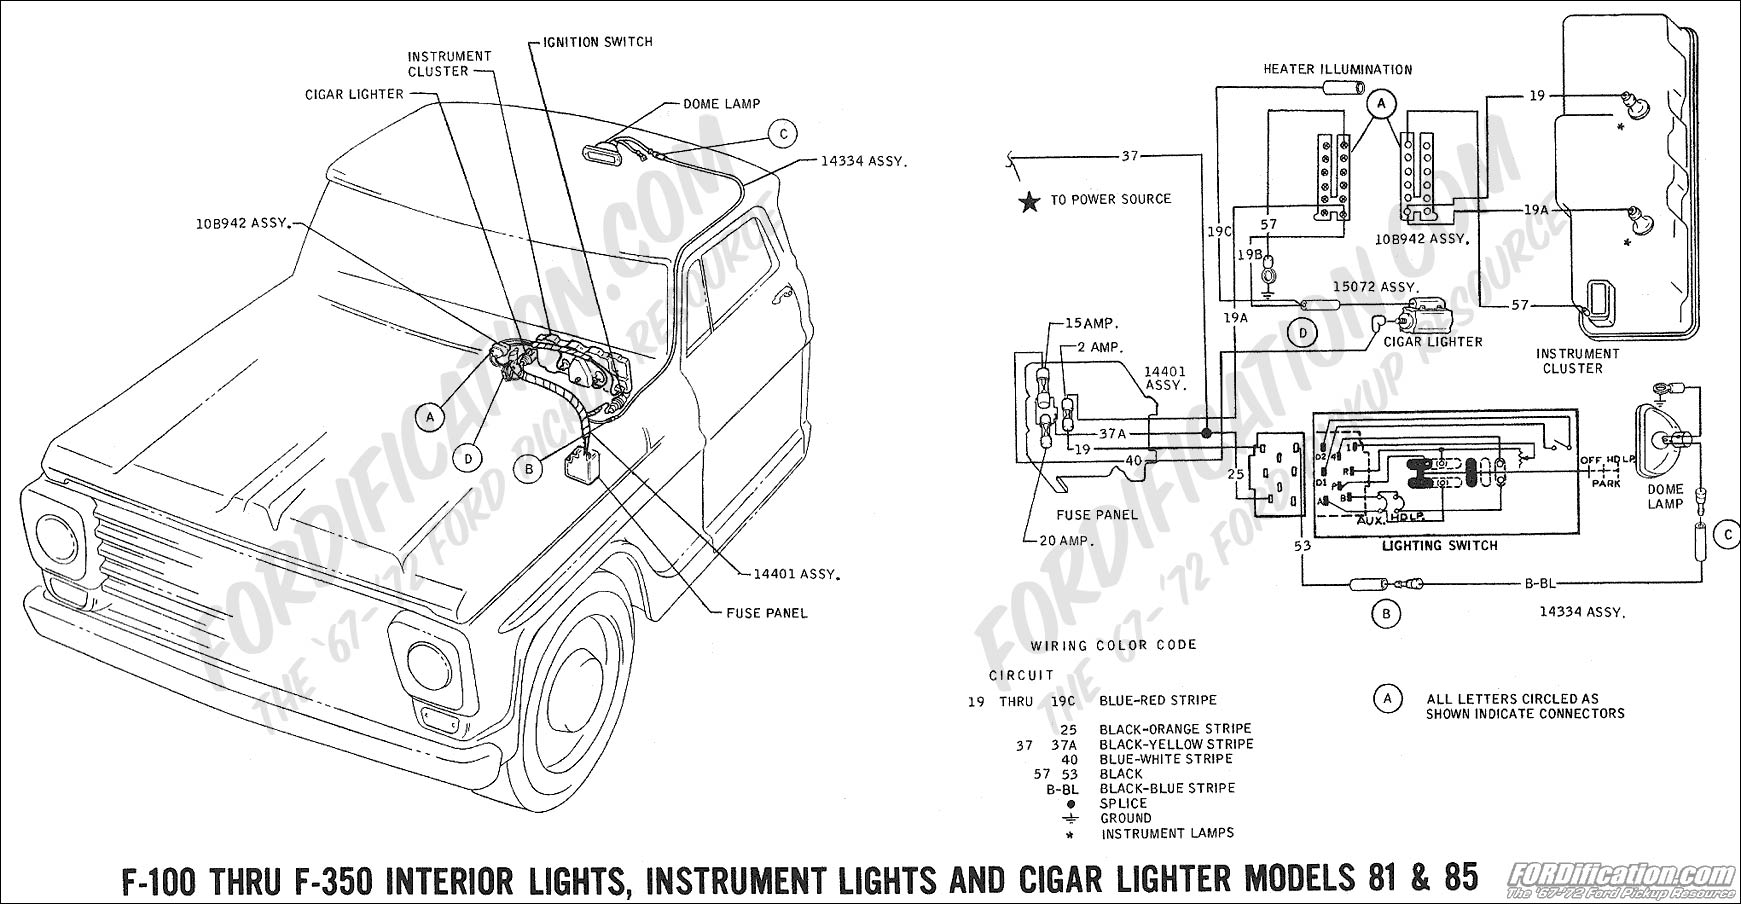 79 corvette wiring diagram cigarette lighter